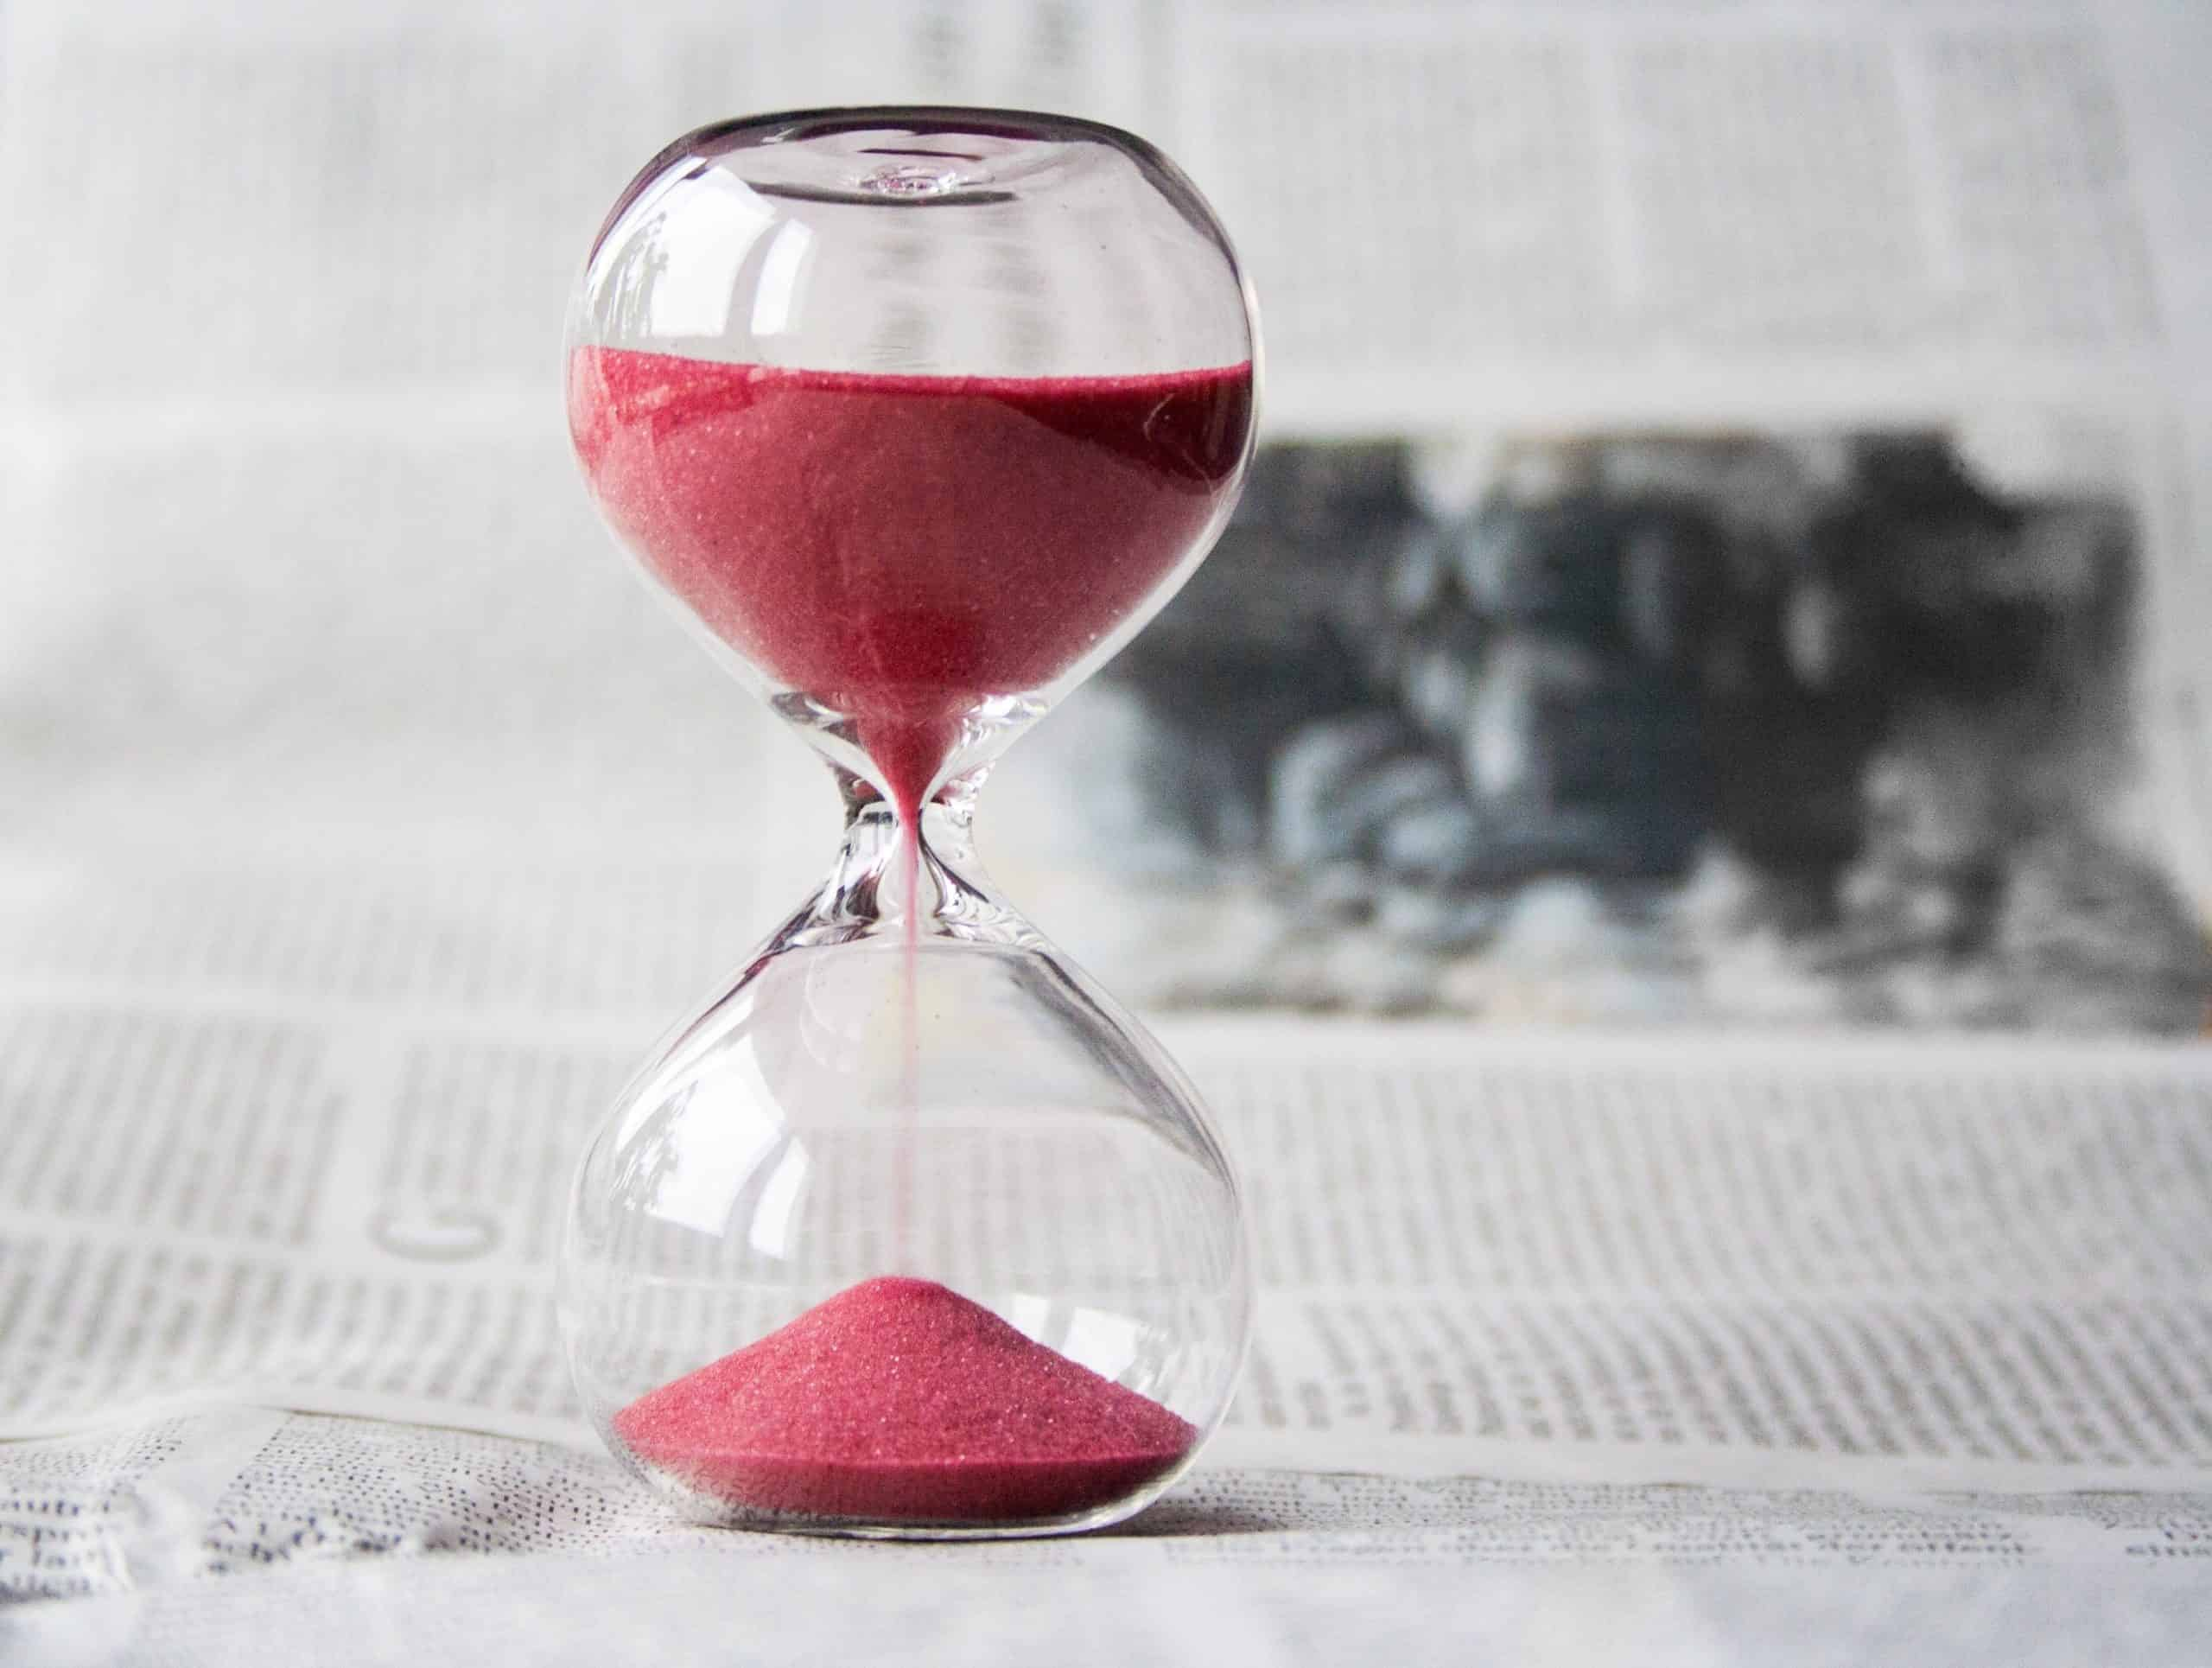 A hourglass timer on a table ontop of a newspaper